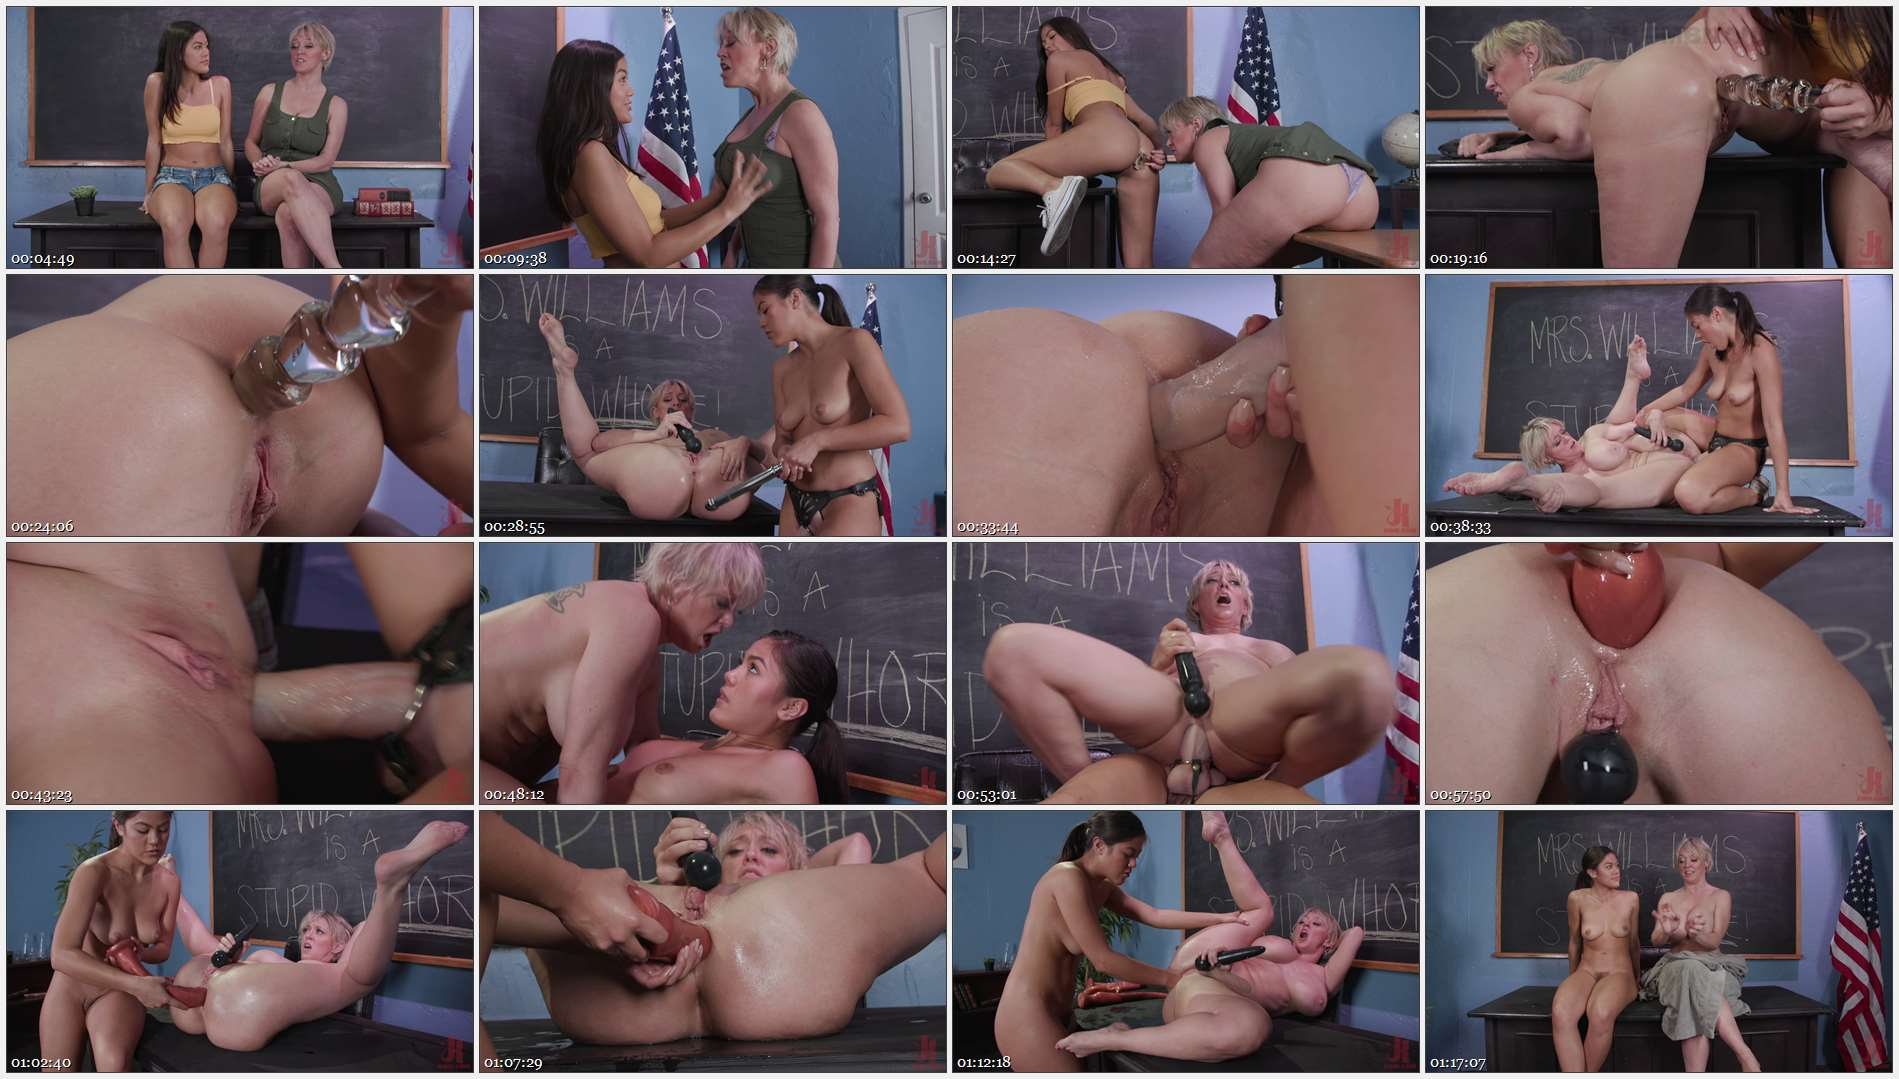 Kendra Spade – Teacher's Pet: Kendra Spade Takes Revenge on Teacher Dee Williams